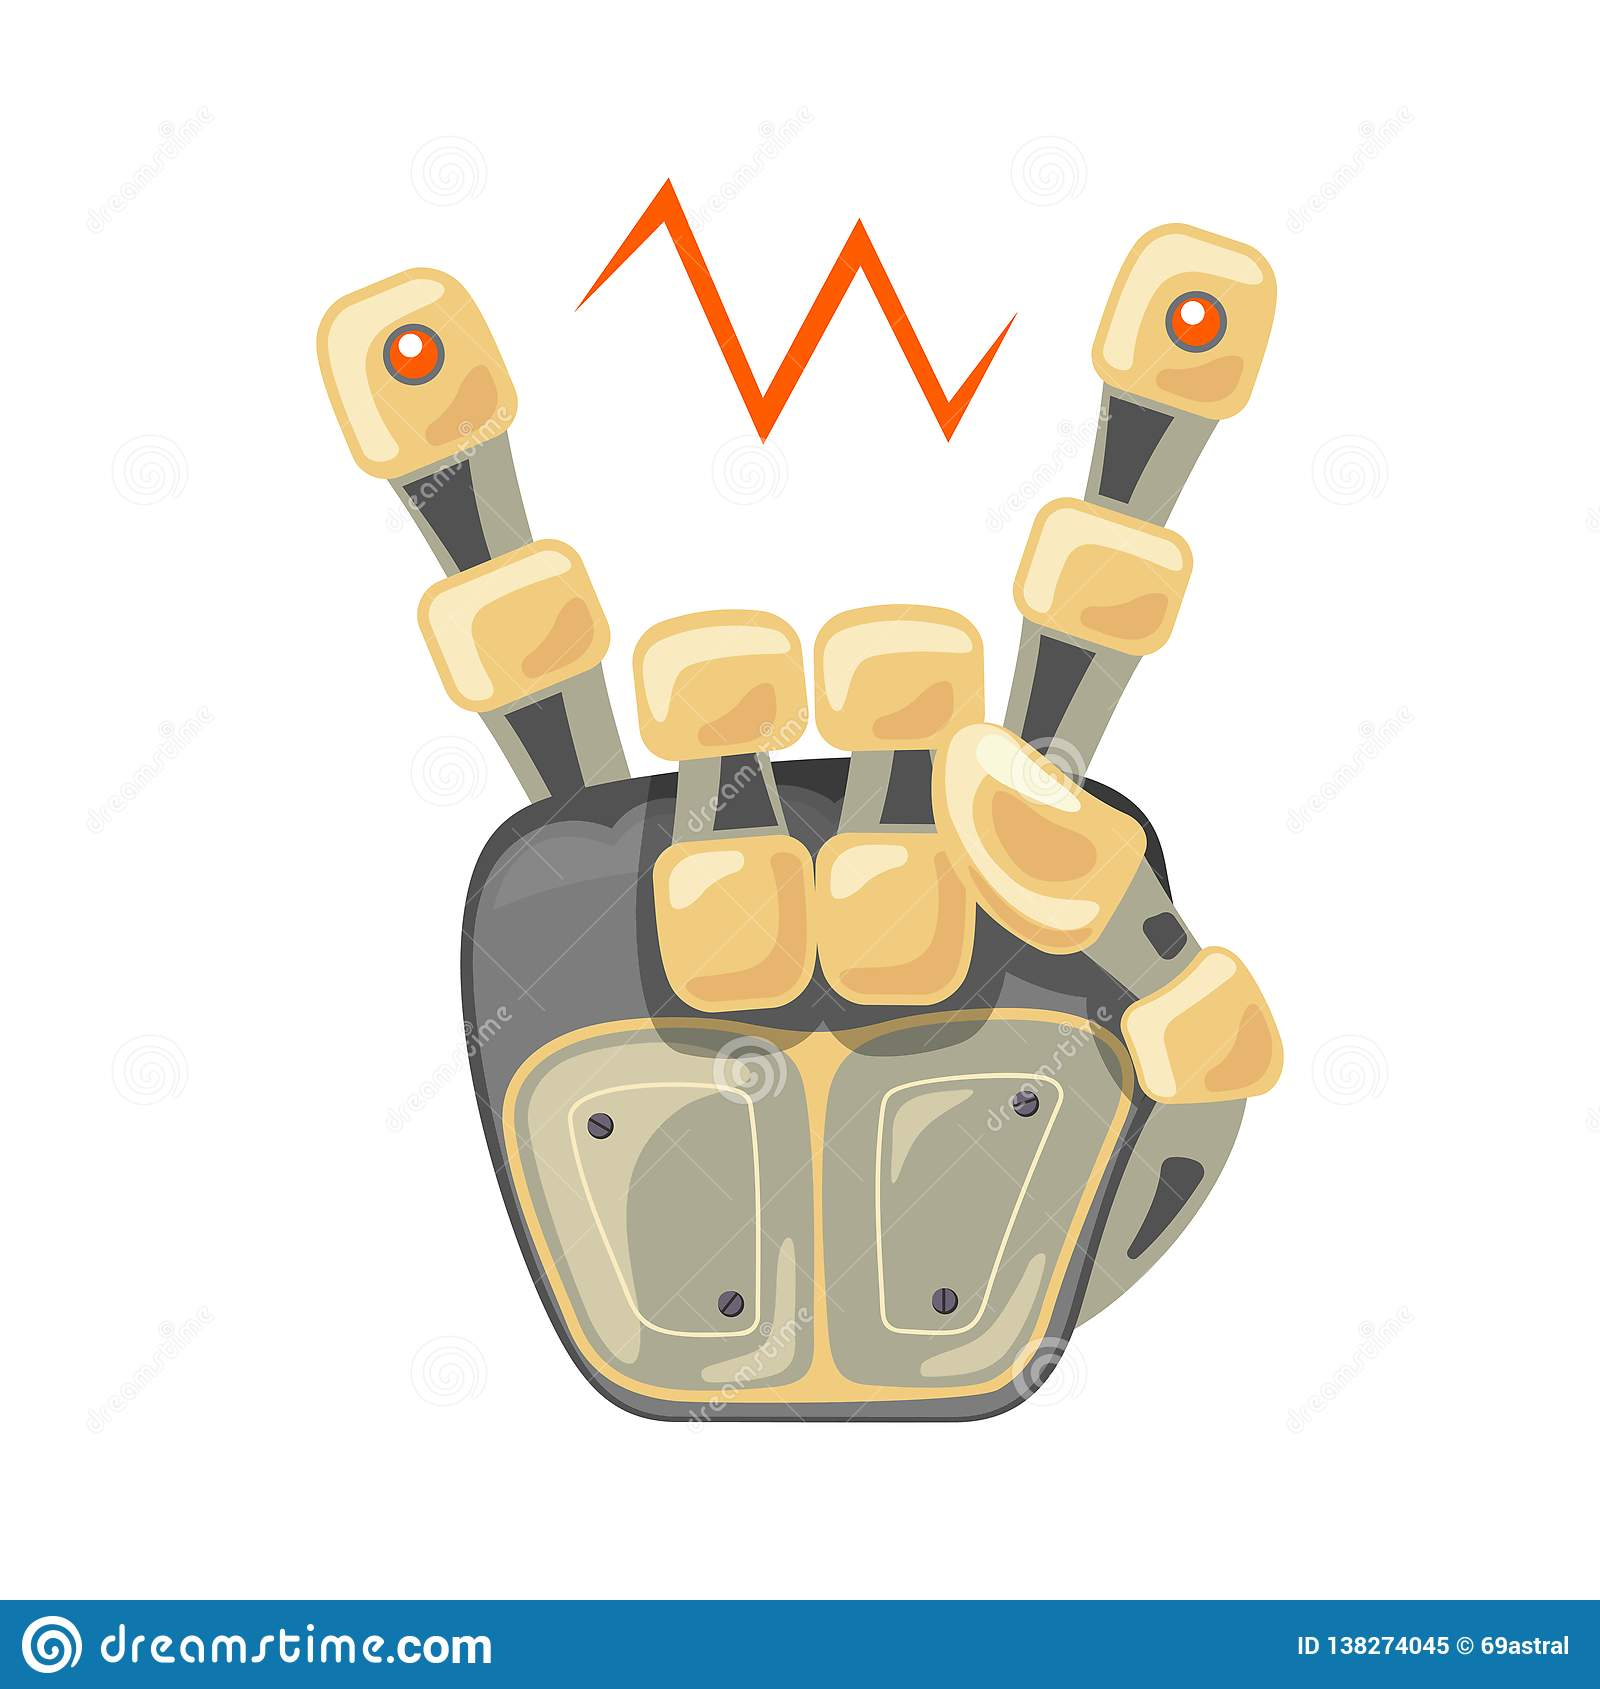 Robot hand. Mechanical technology machine engineering symbol. Cool, good icon. Rock music. Peace. Energy between fingers